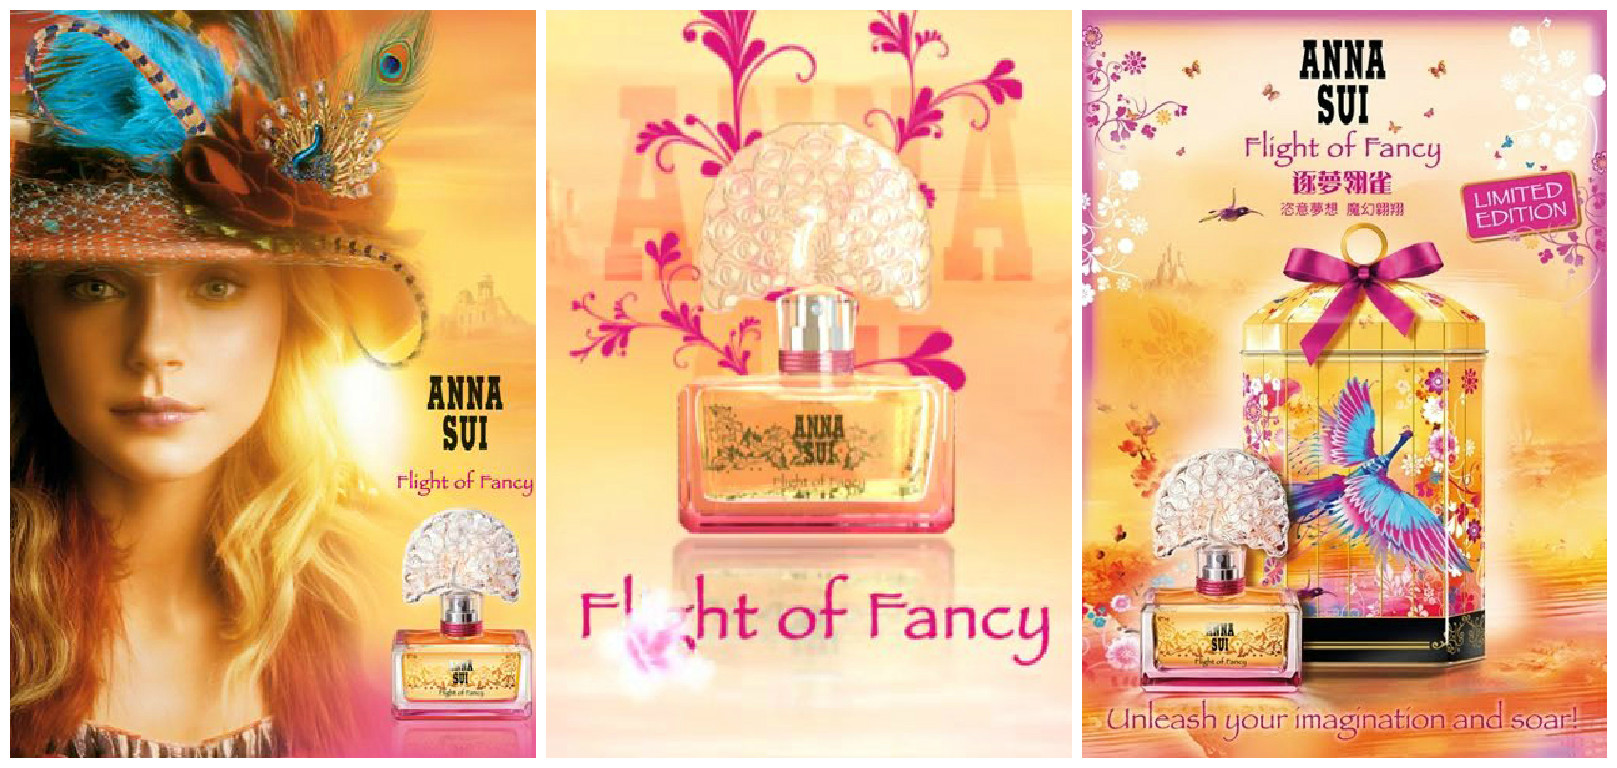 Anna Sui Flight of Fancy Perfume Review